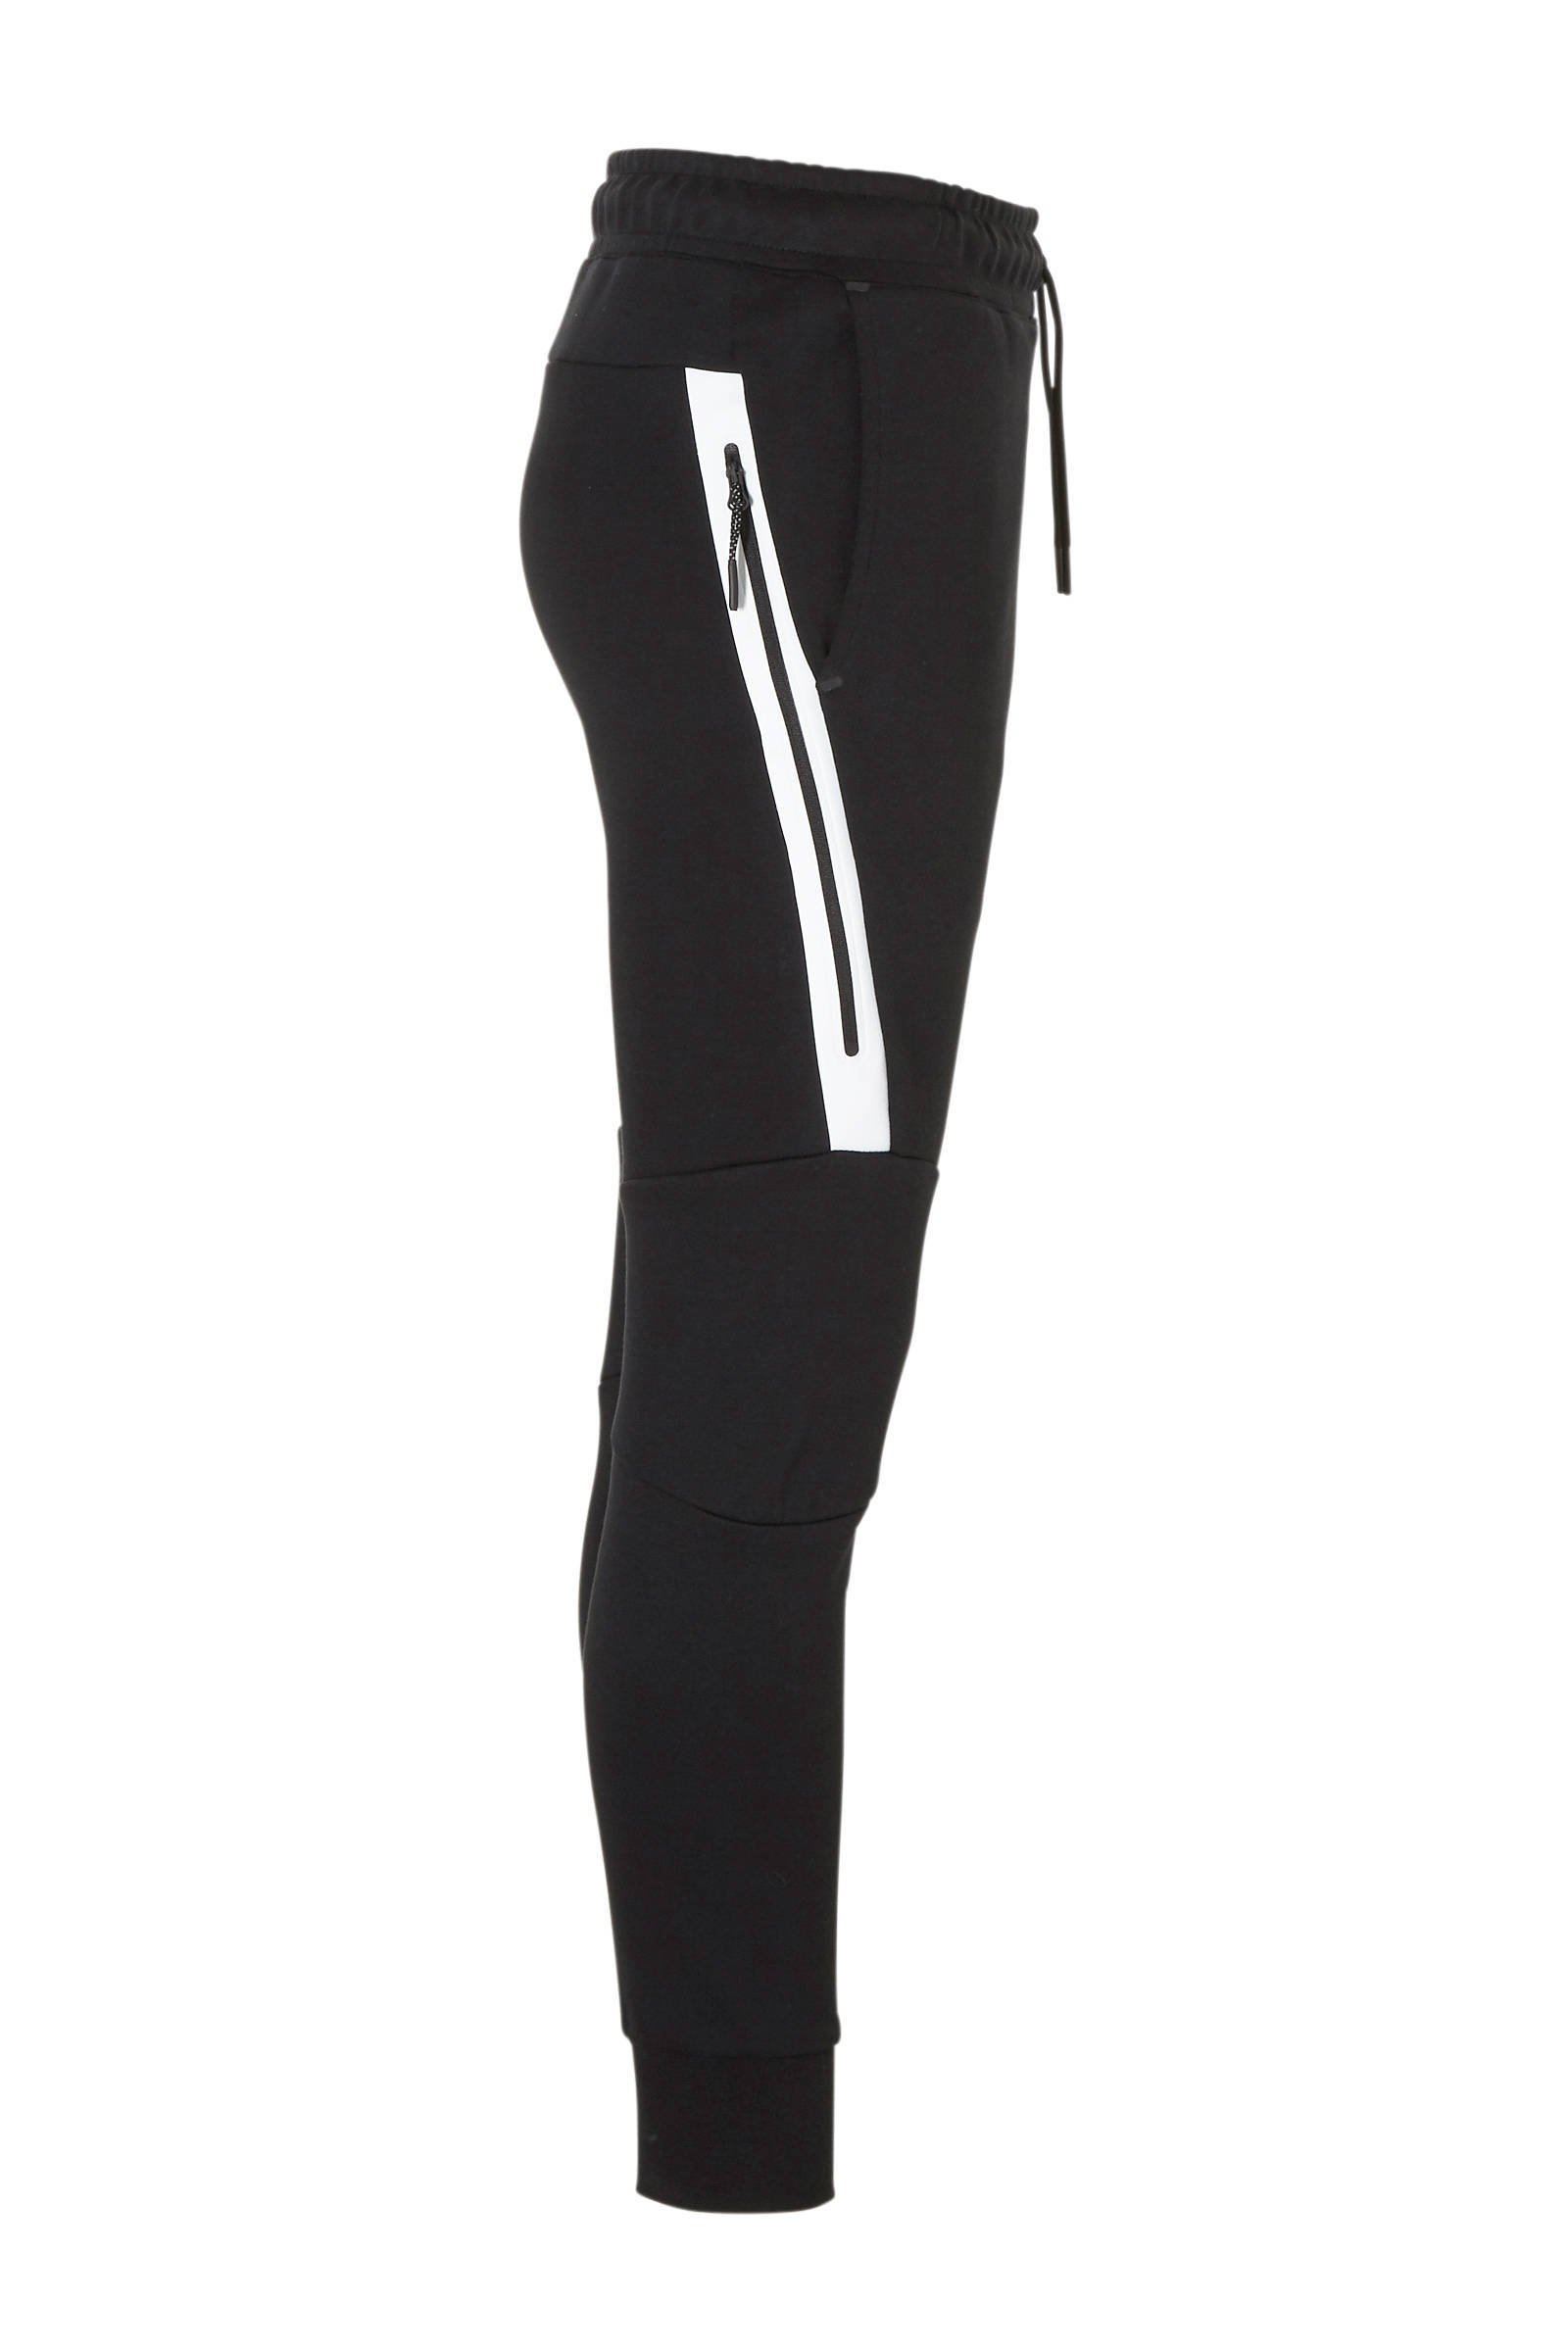 Nike Tech Fleece joggingbroek | wehkamp